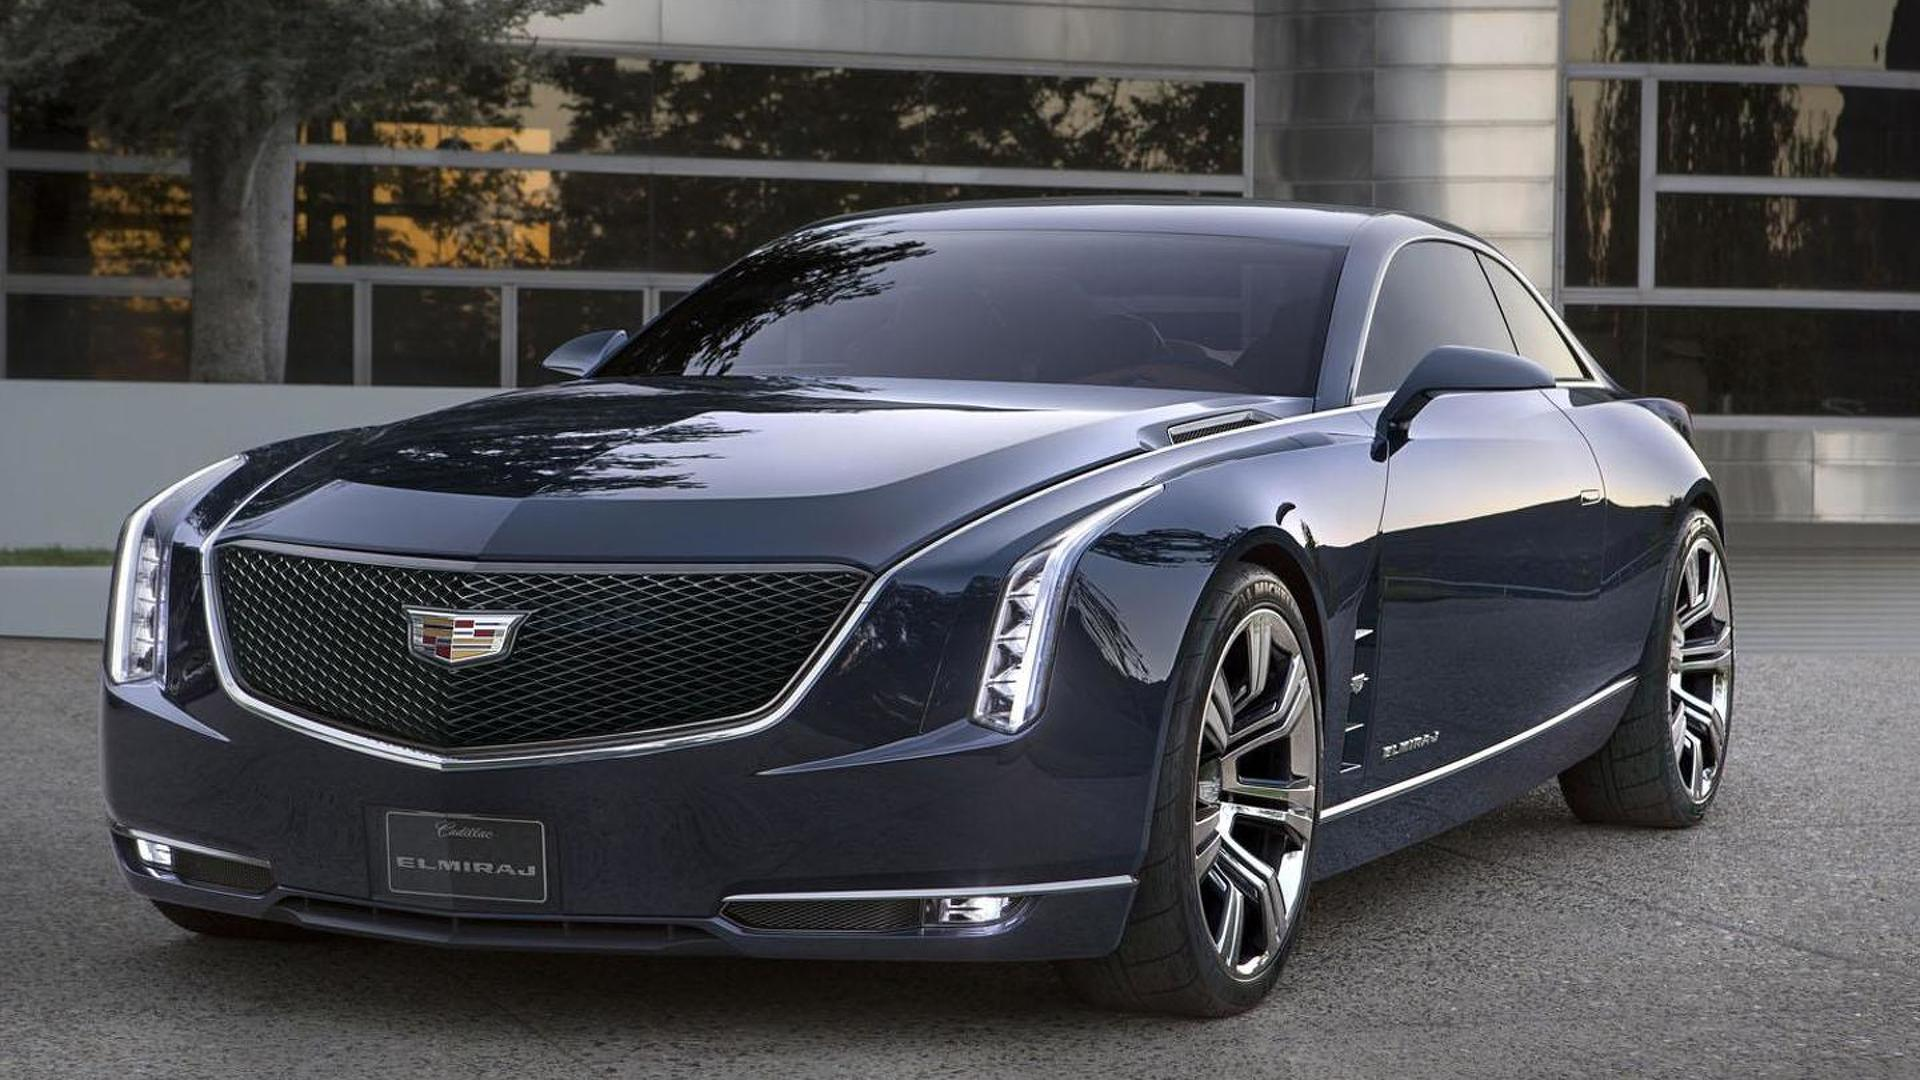 Cadillac approves ultra-luxury flagship, could be called the CT8 or CT9